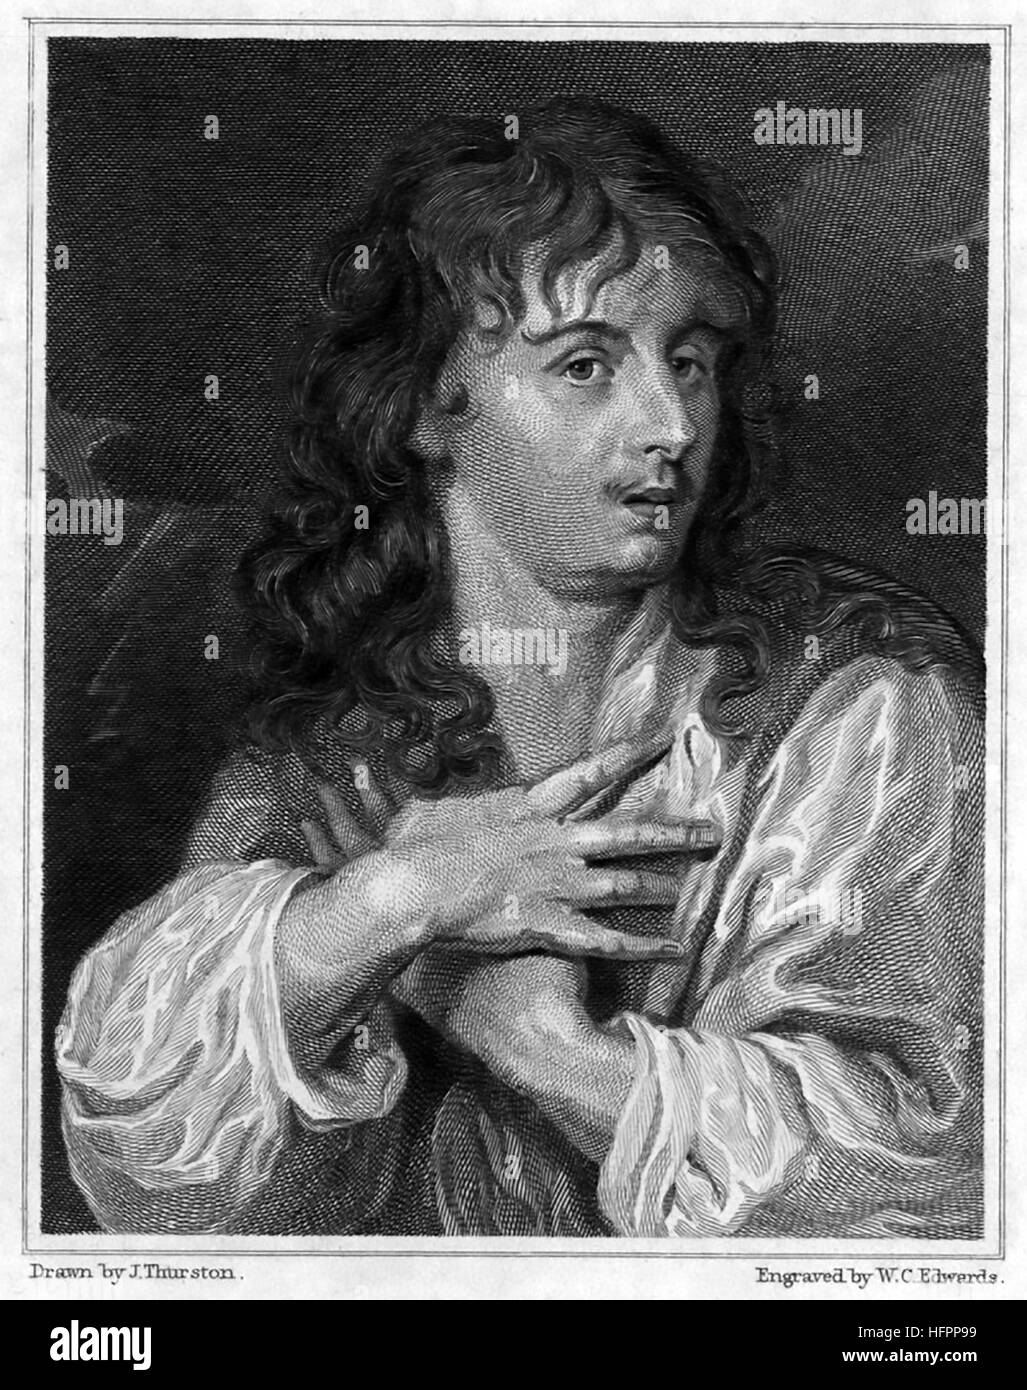 """JOHN OGILBY (1600-1676) Scottish cartographer who published the first British road atlas """"Britannia"""" in 1675. An Stock Photo"""